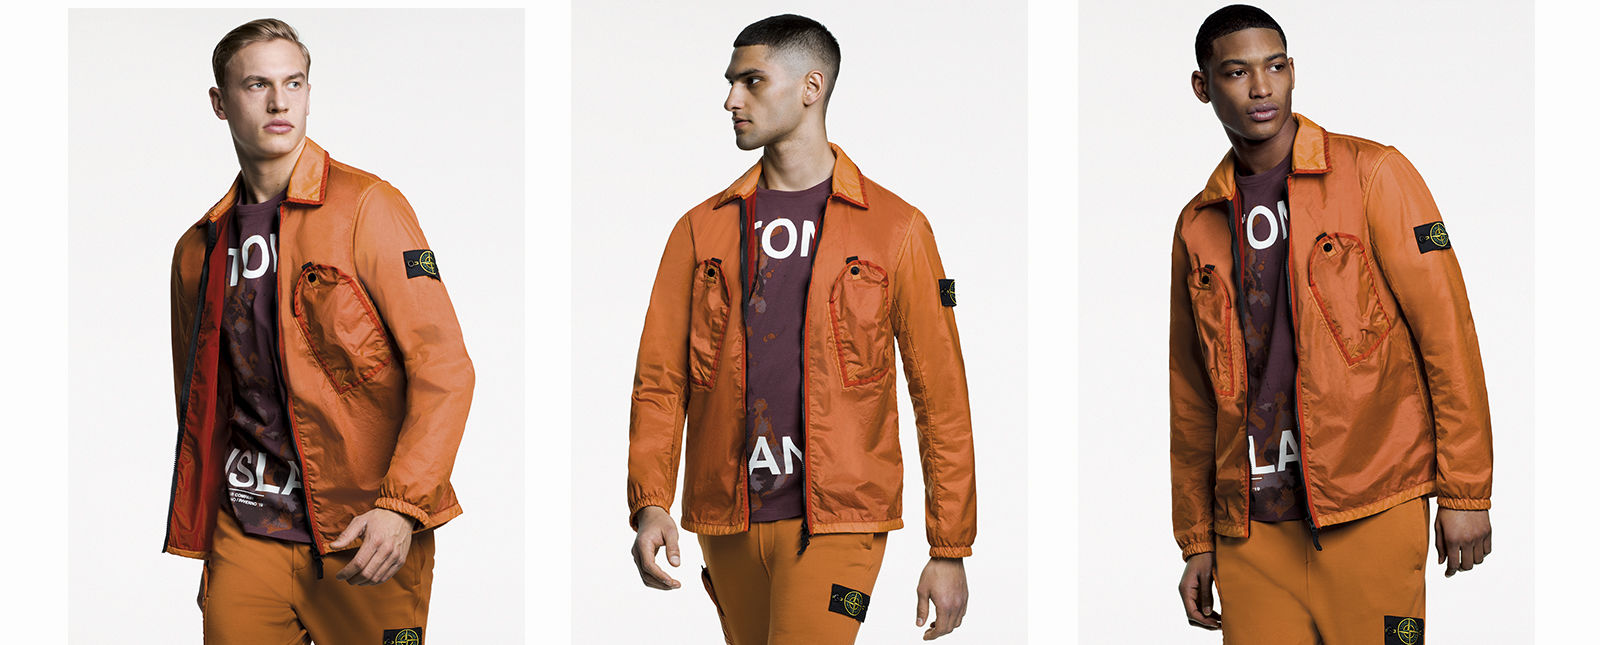 Model wearing shiny, two tone orange overshirt with diagonal pockets at chest and zipper fastening.